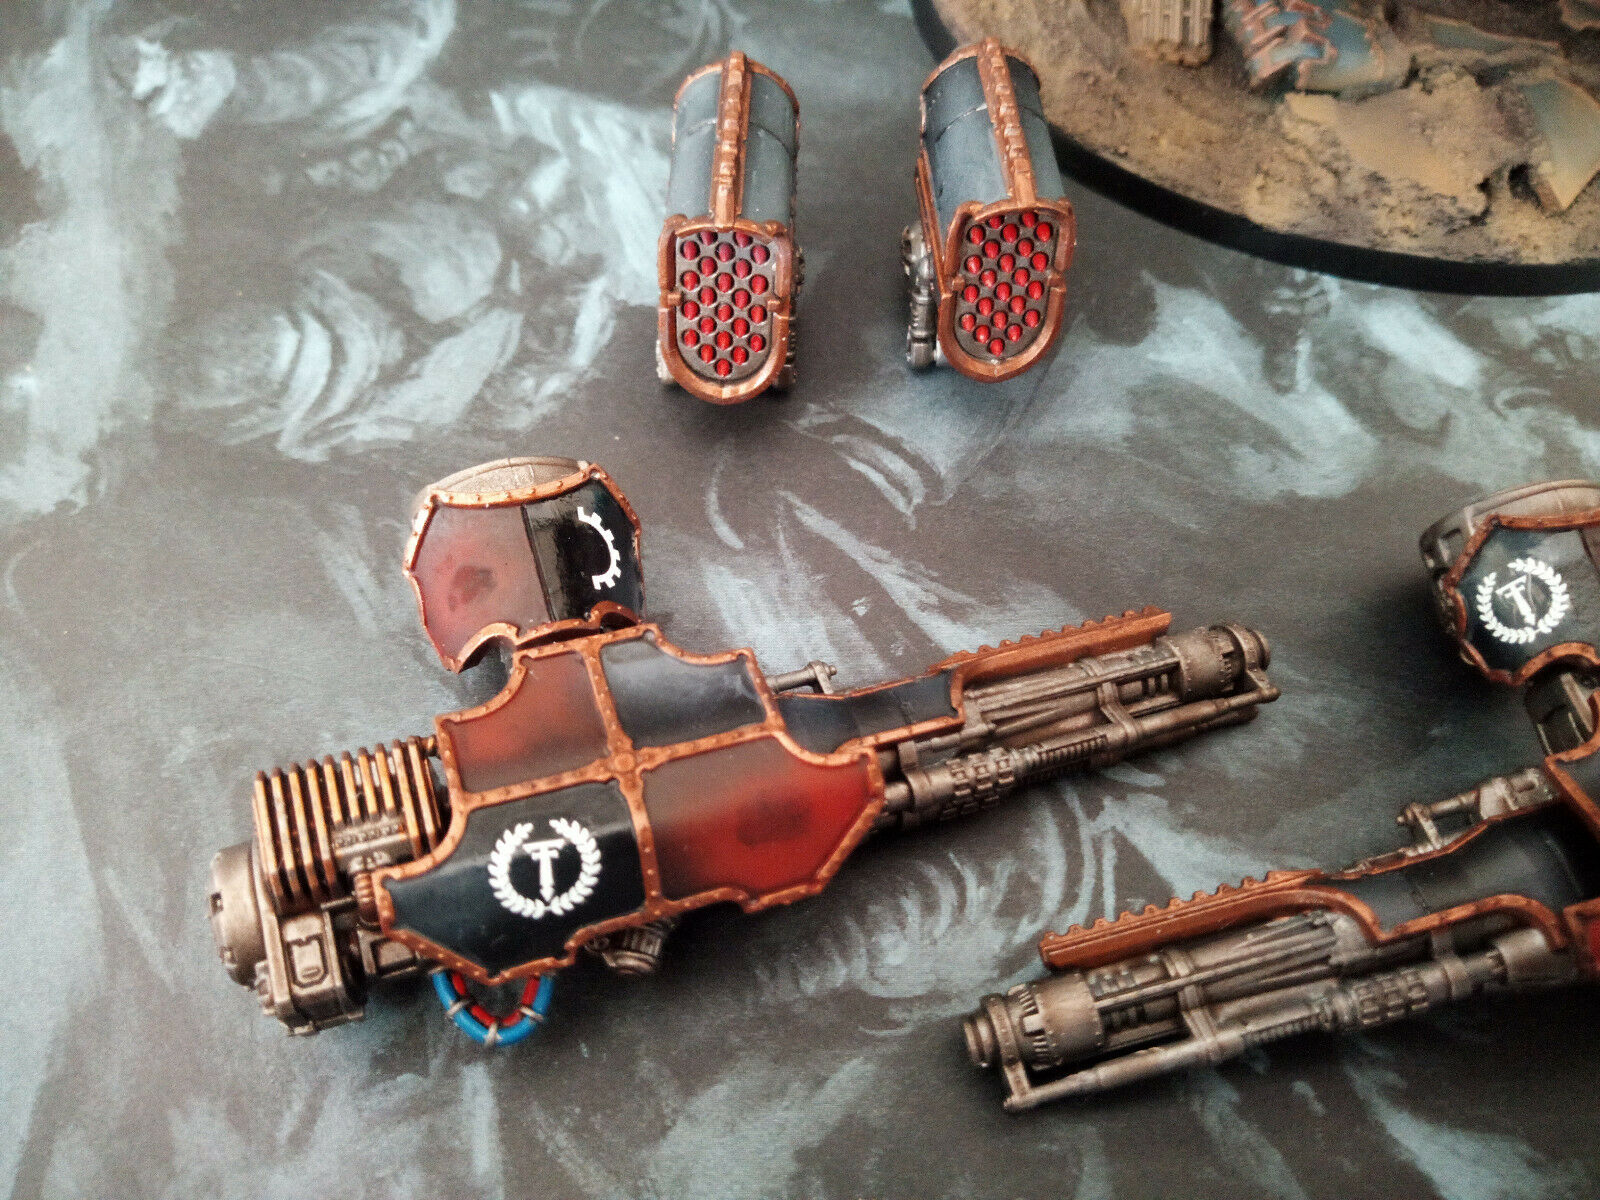 Adeptus Titanicus Legio Mortis Warlord Battle Titan with magnetized weapons weapons weapons a87a6c